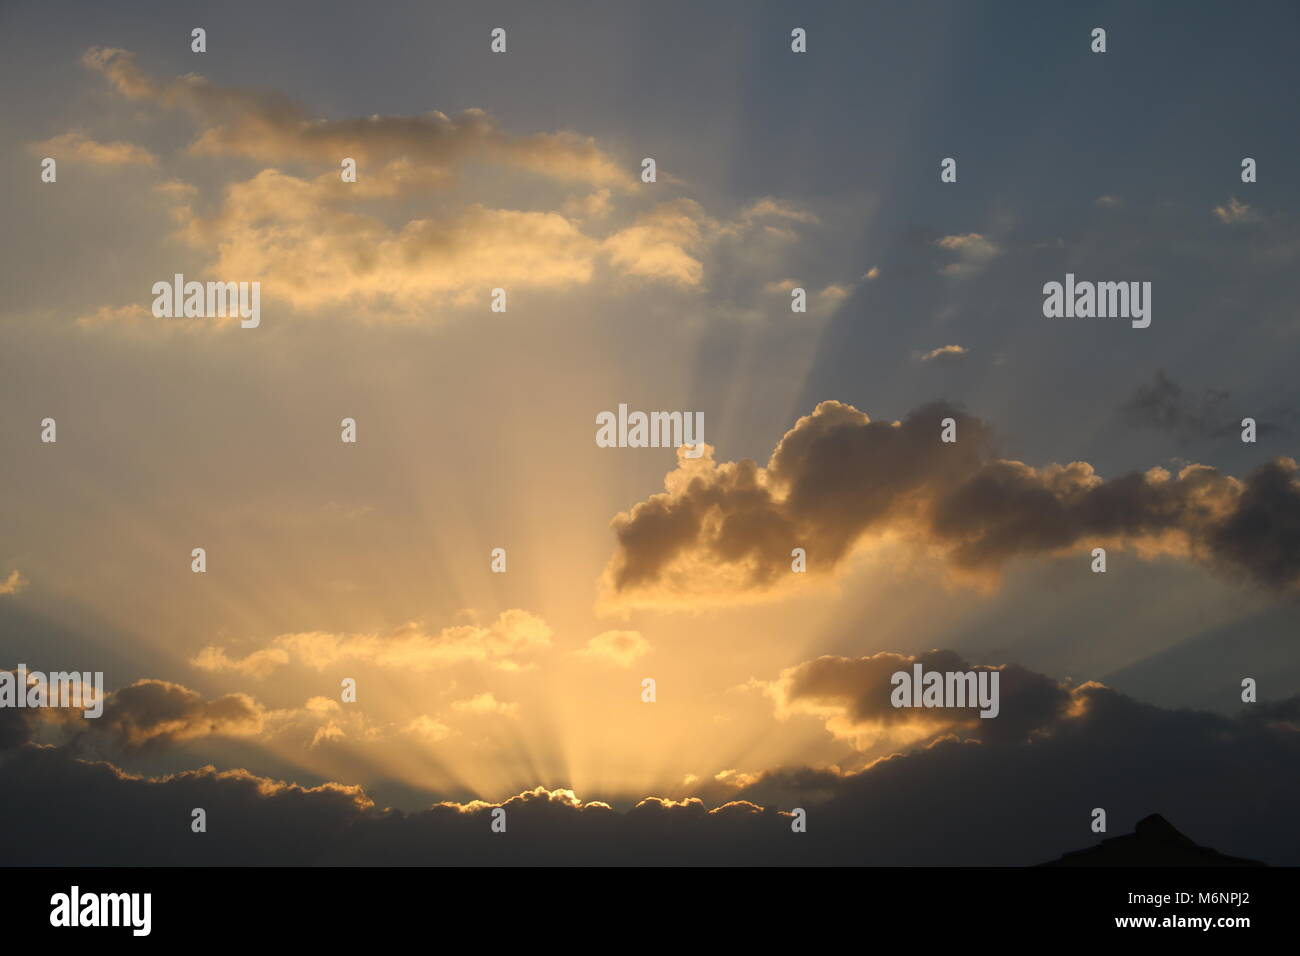 golden rays of early morning sunrise light bursting through clouds - Stock Image